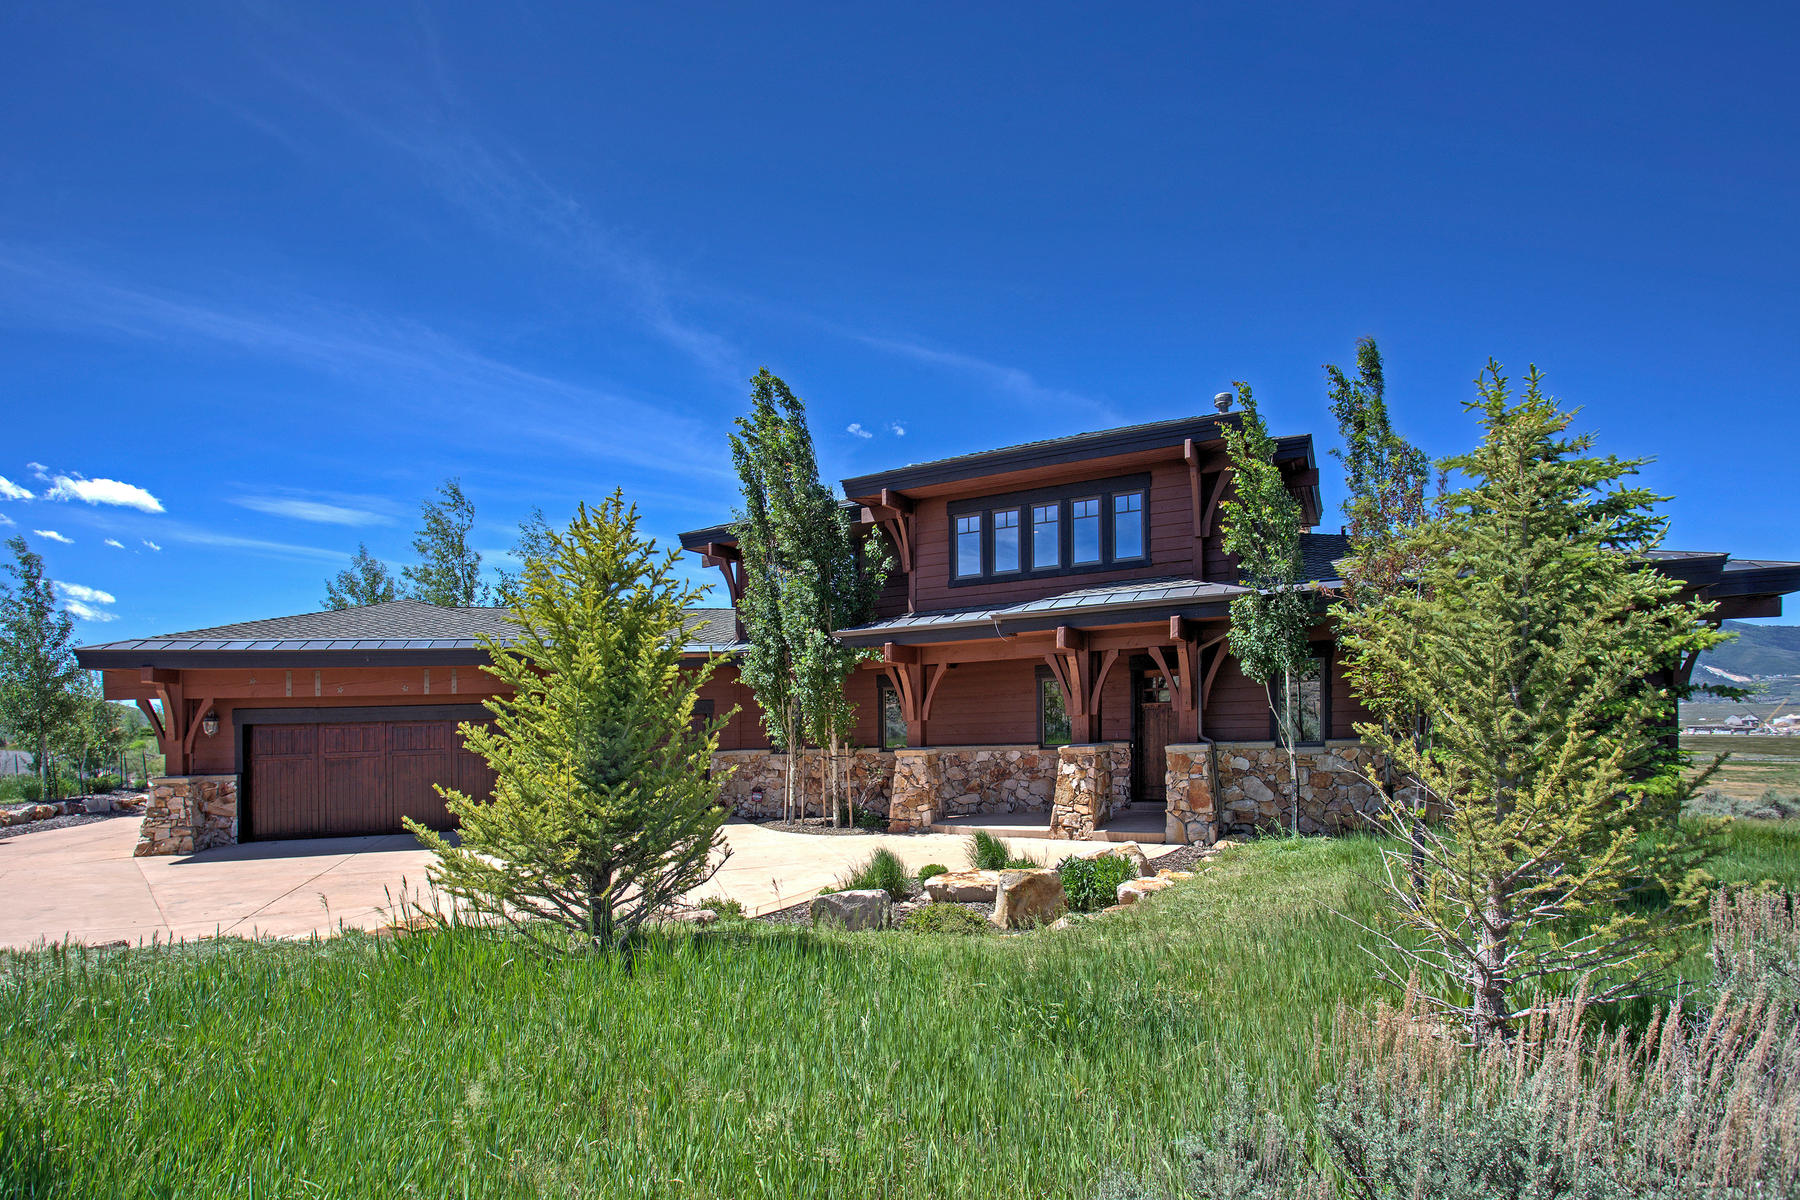 Single Family Home for Sale at Location, Views, Furnishings & Membership Deposit All Included 7342 N Westview Draw Park City, Utah, 84098 United States